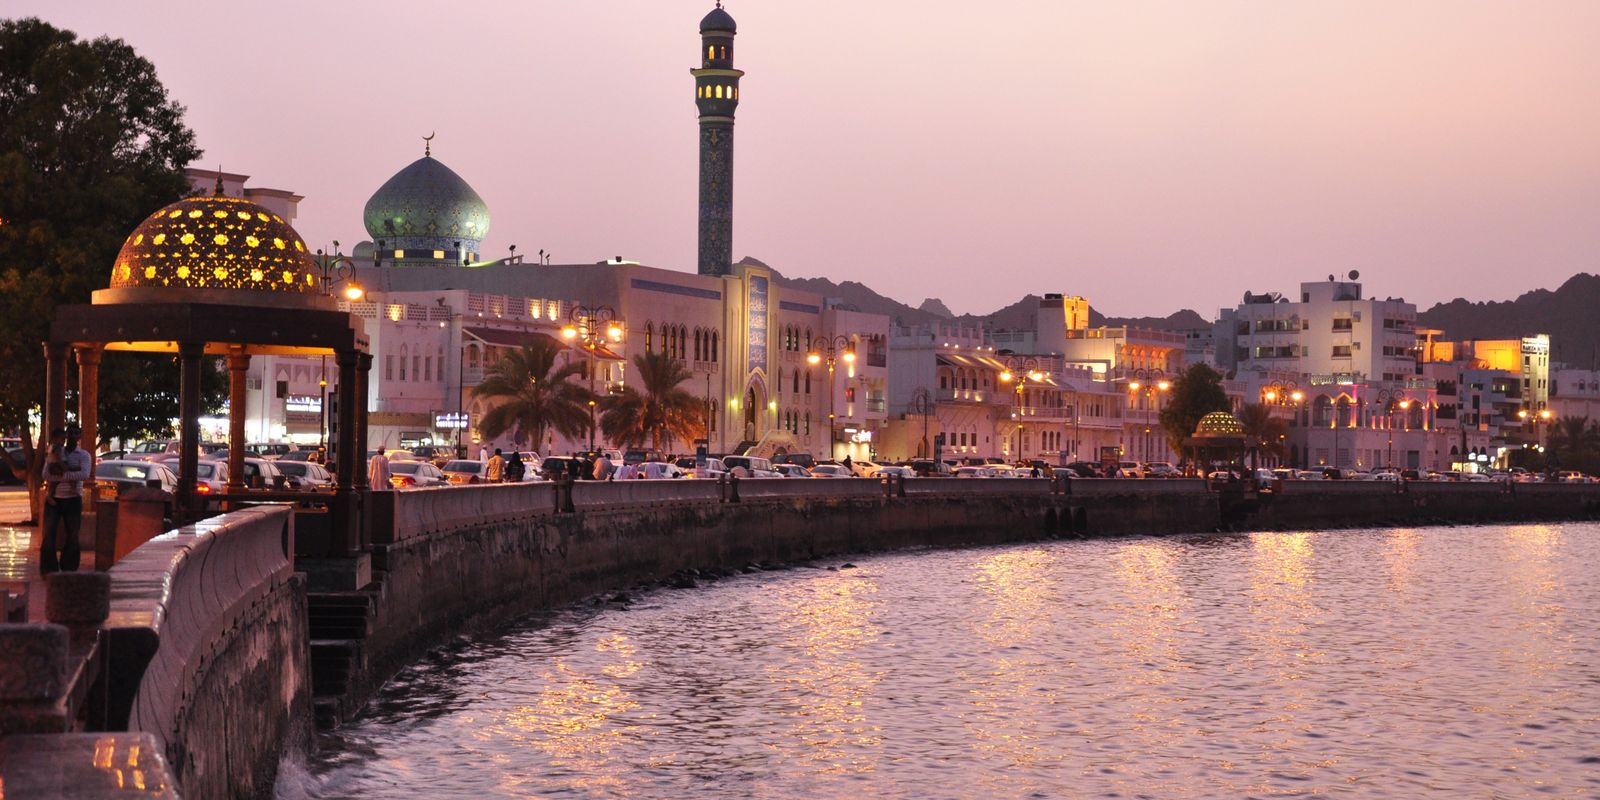 Muscat: souks, smells and superyachts